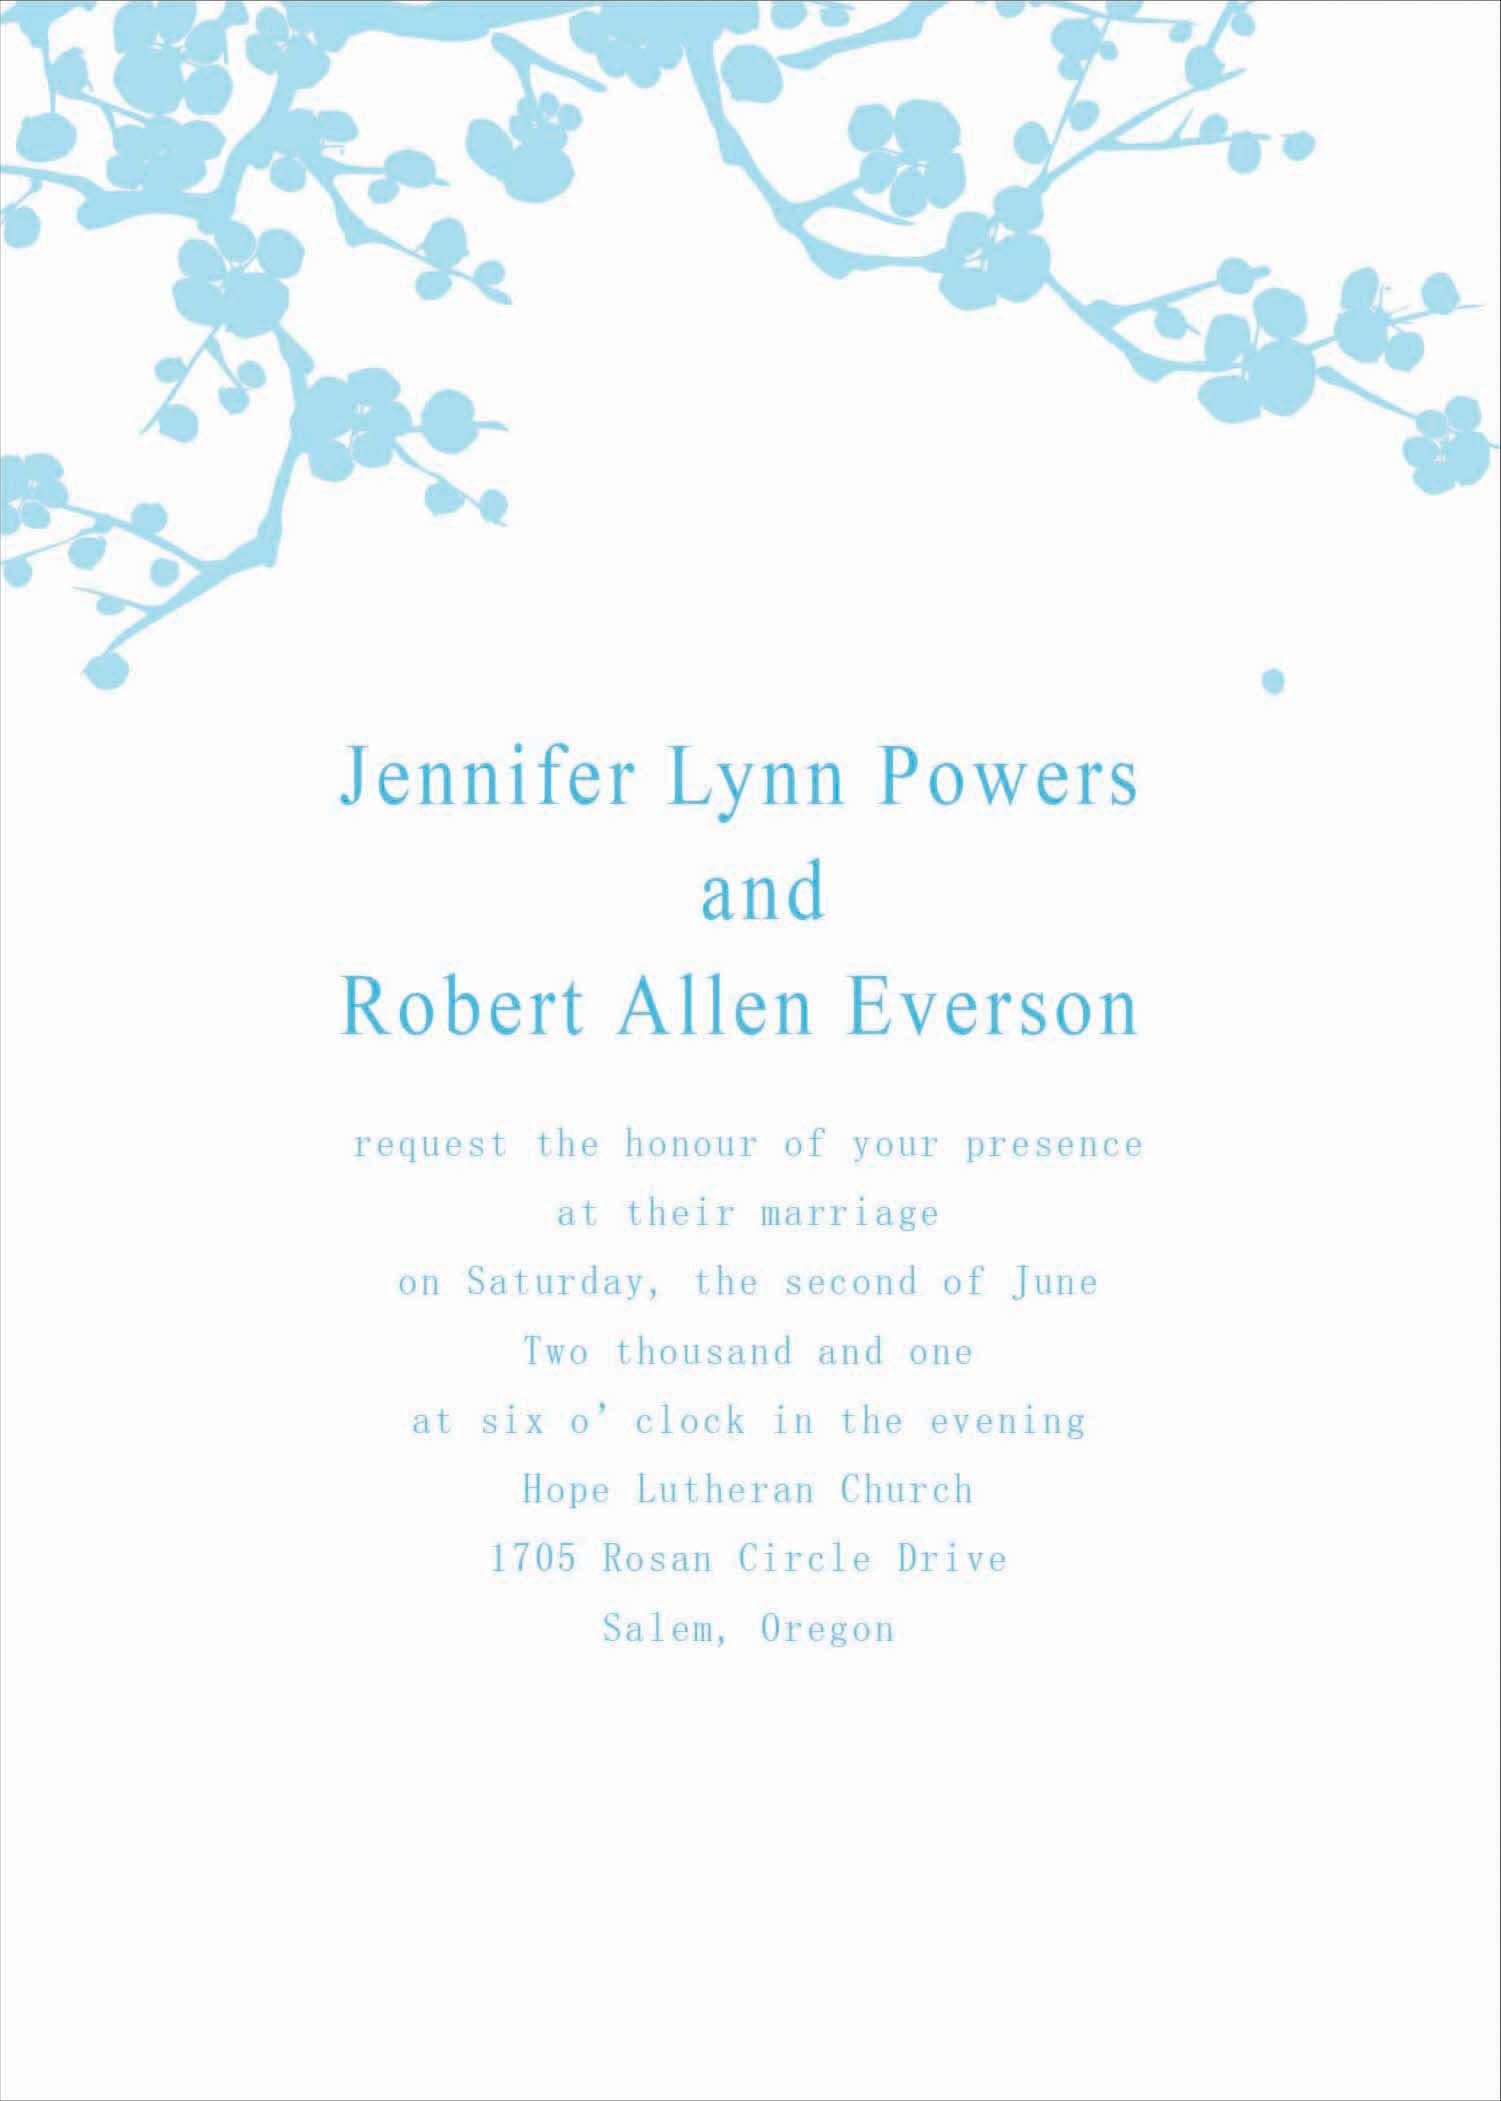 Collection Of Thousands Of Free Affordable Wedding Invitation